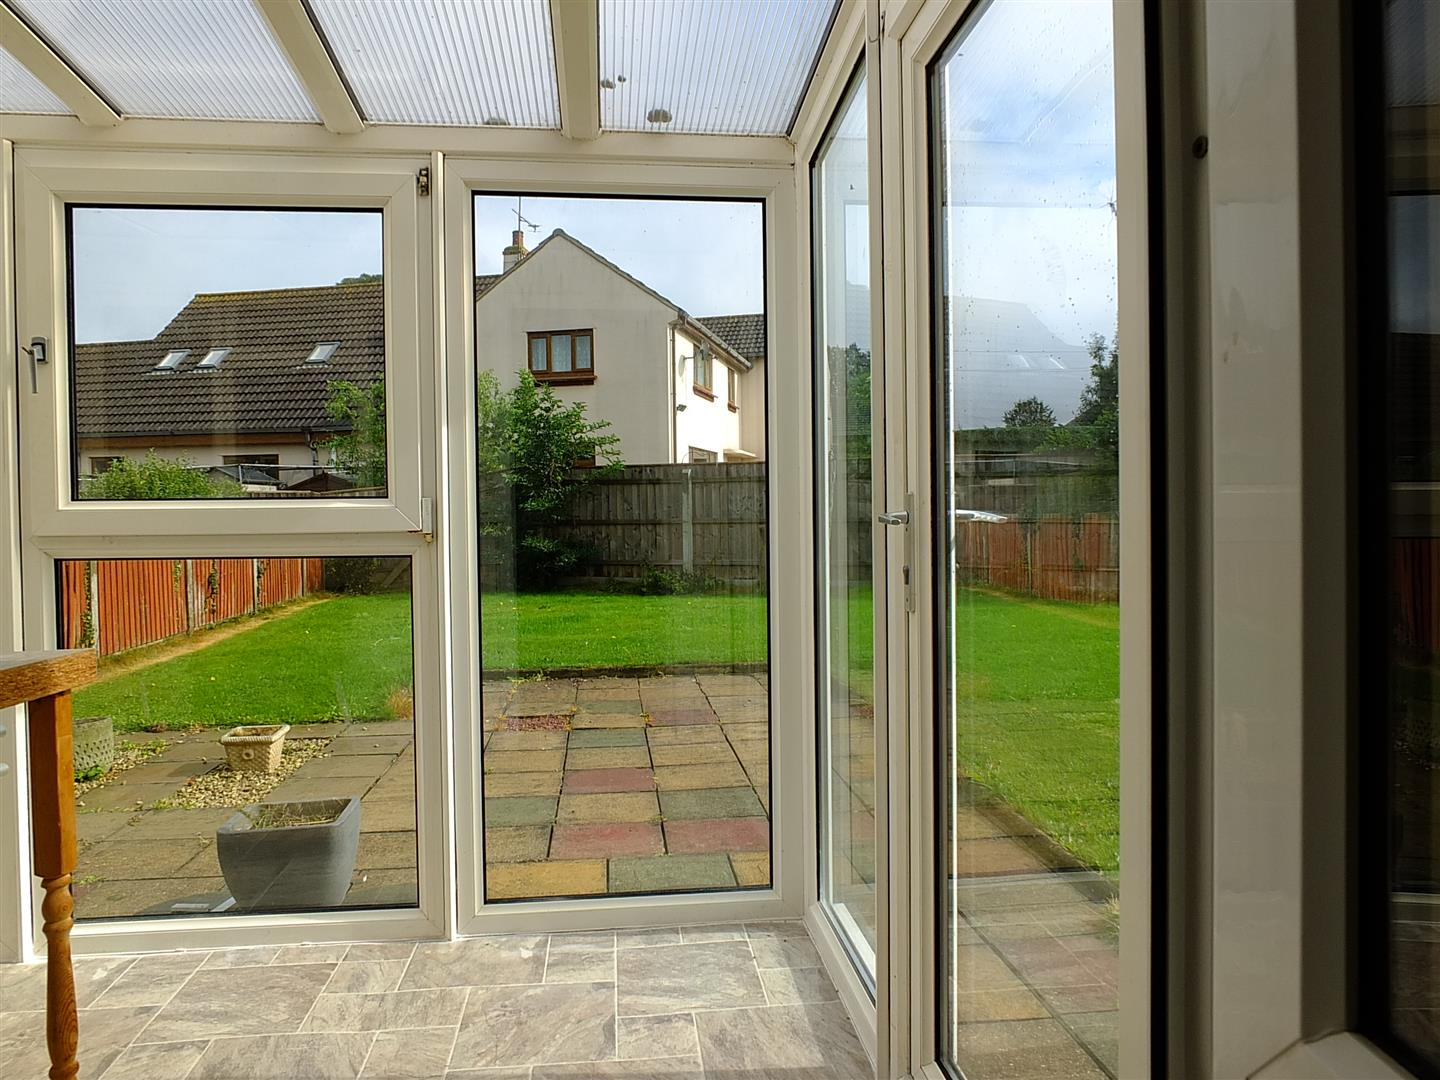 3 bed detached bungalow to rent in Long Sutton Spalding, PE12 9LY  - Property Image 9